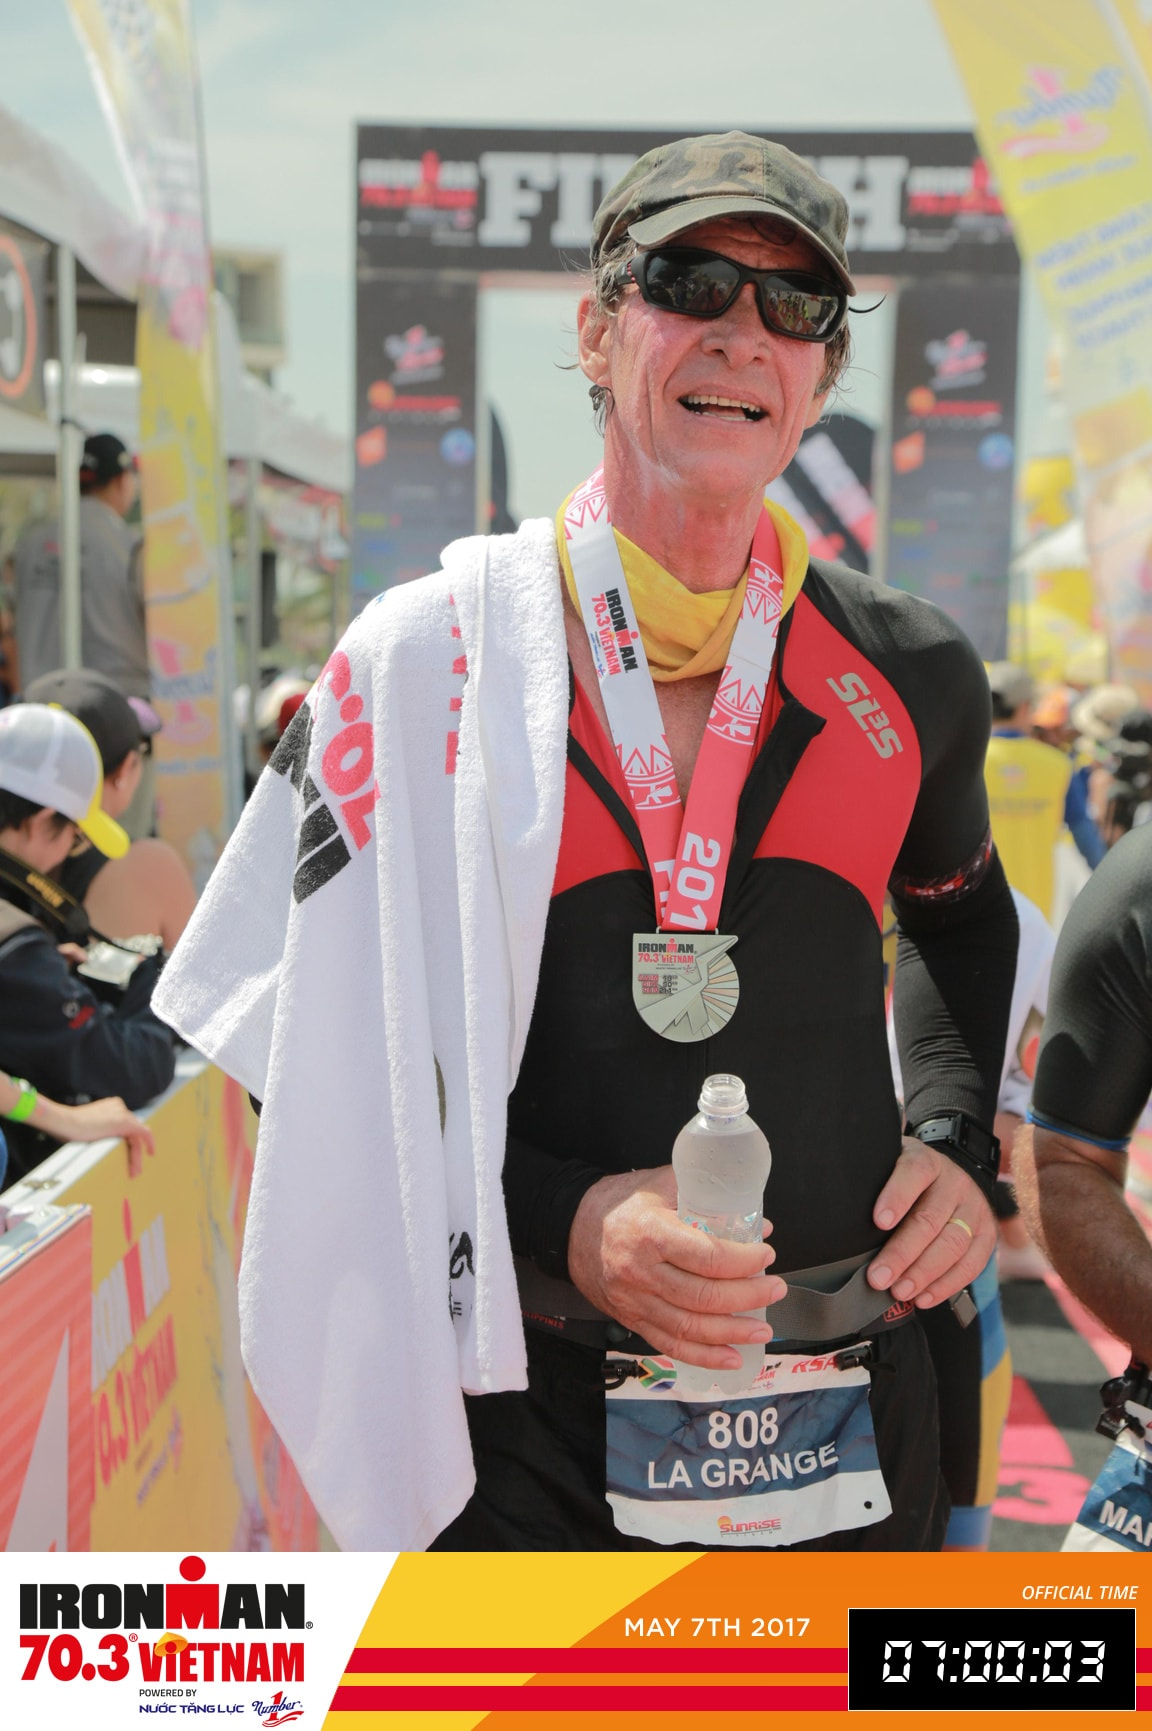 BISHCMC Athelete Chris La Grange in the Danang IRONMAN-min